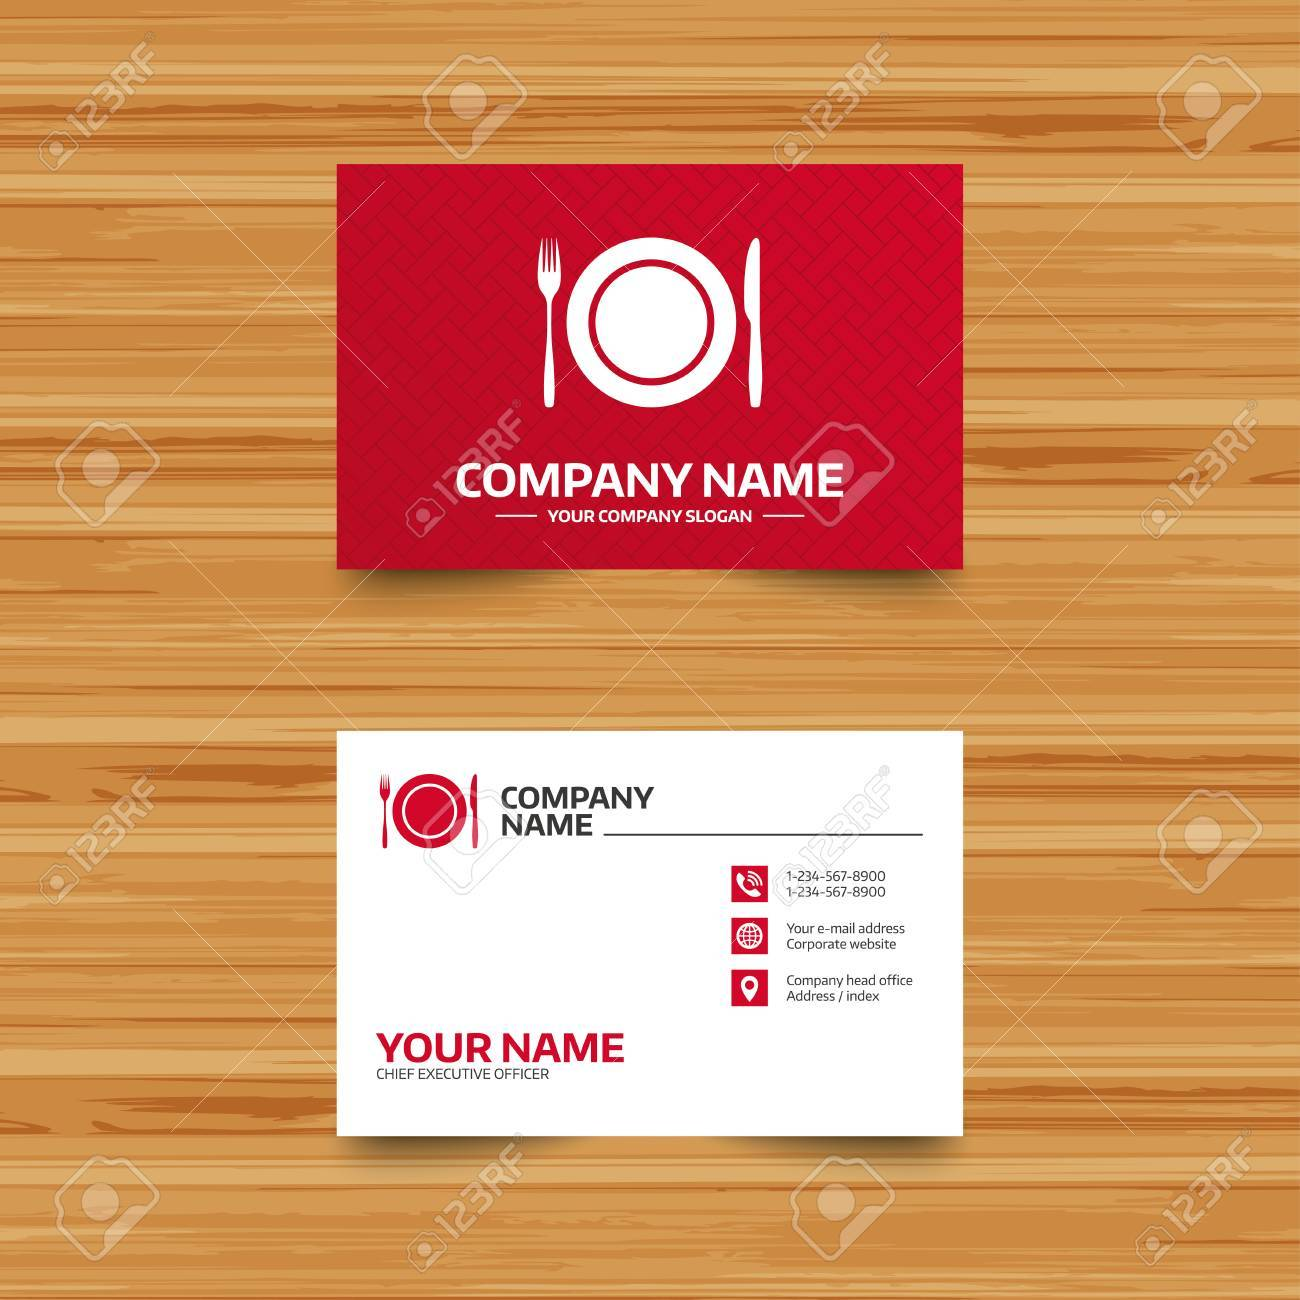 Business card template plate dish with fork and knife eat sign business card template plate dish with fork and knife eat sign icon cutlery reheart Images